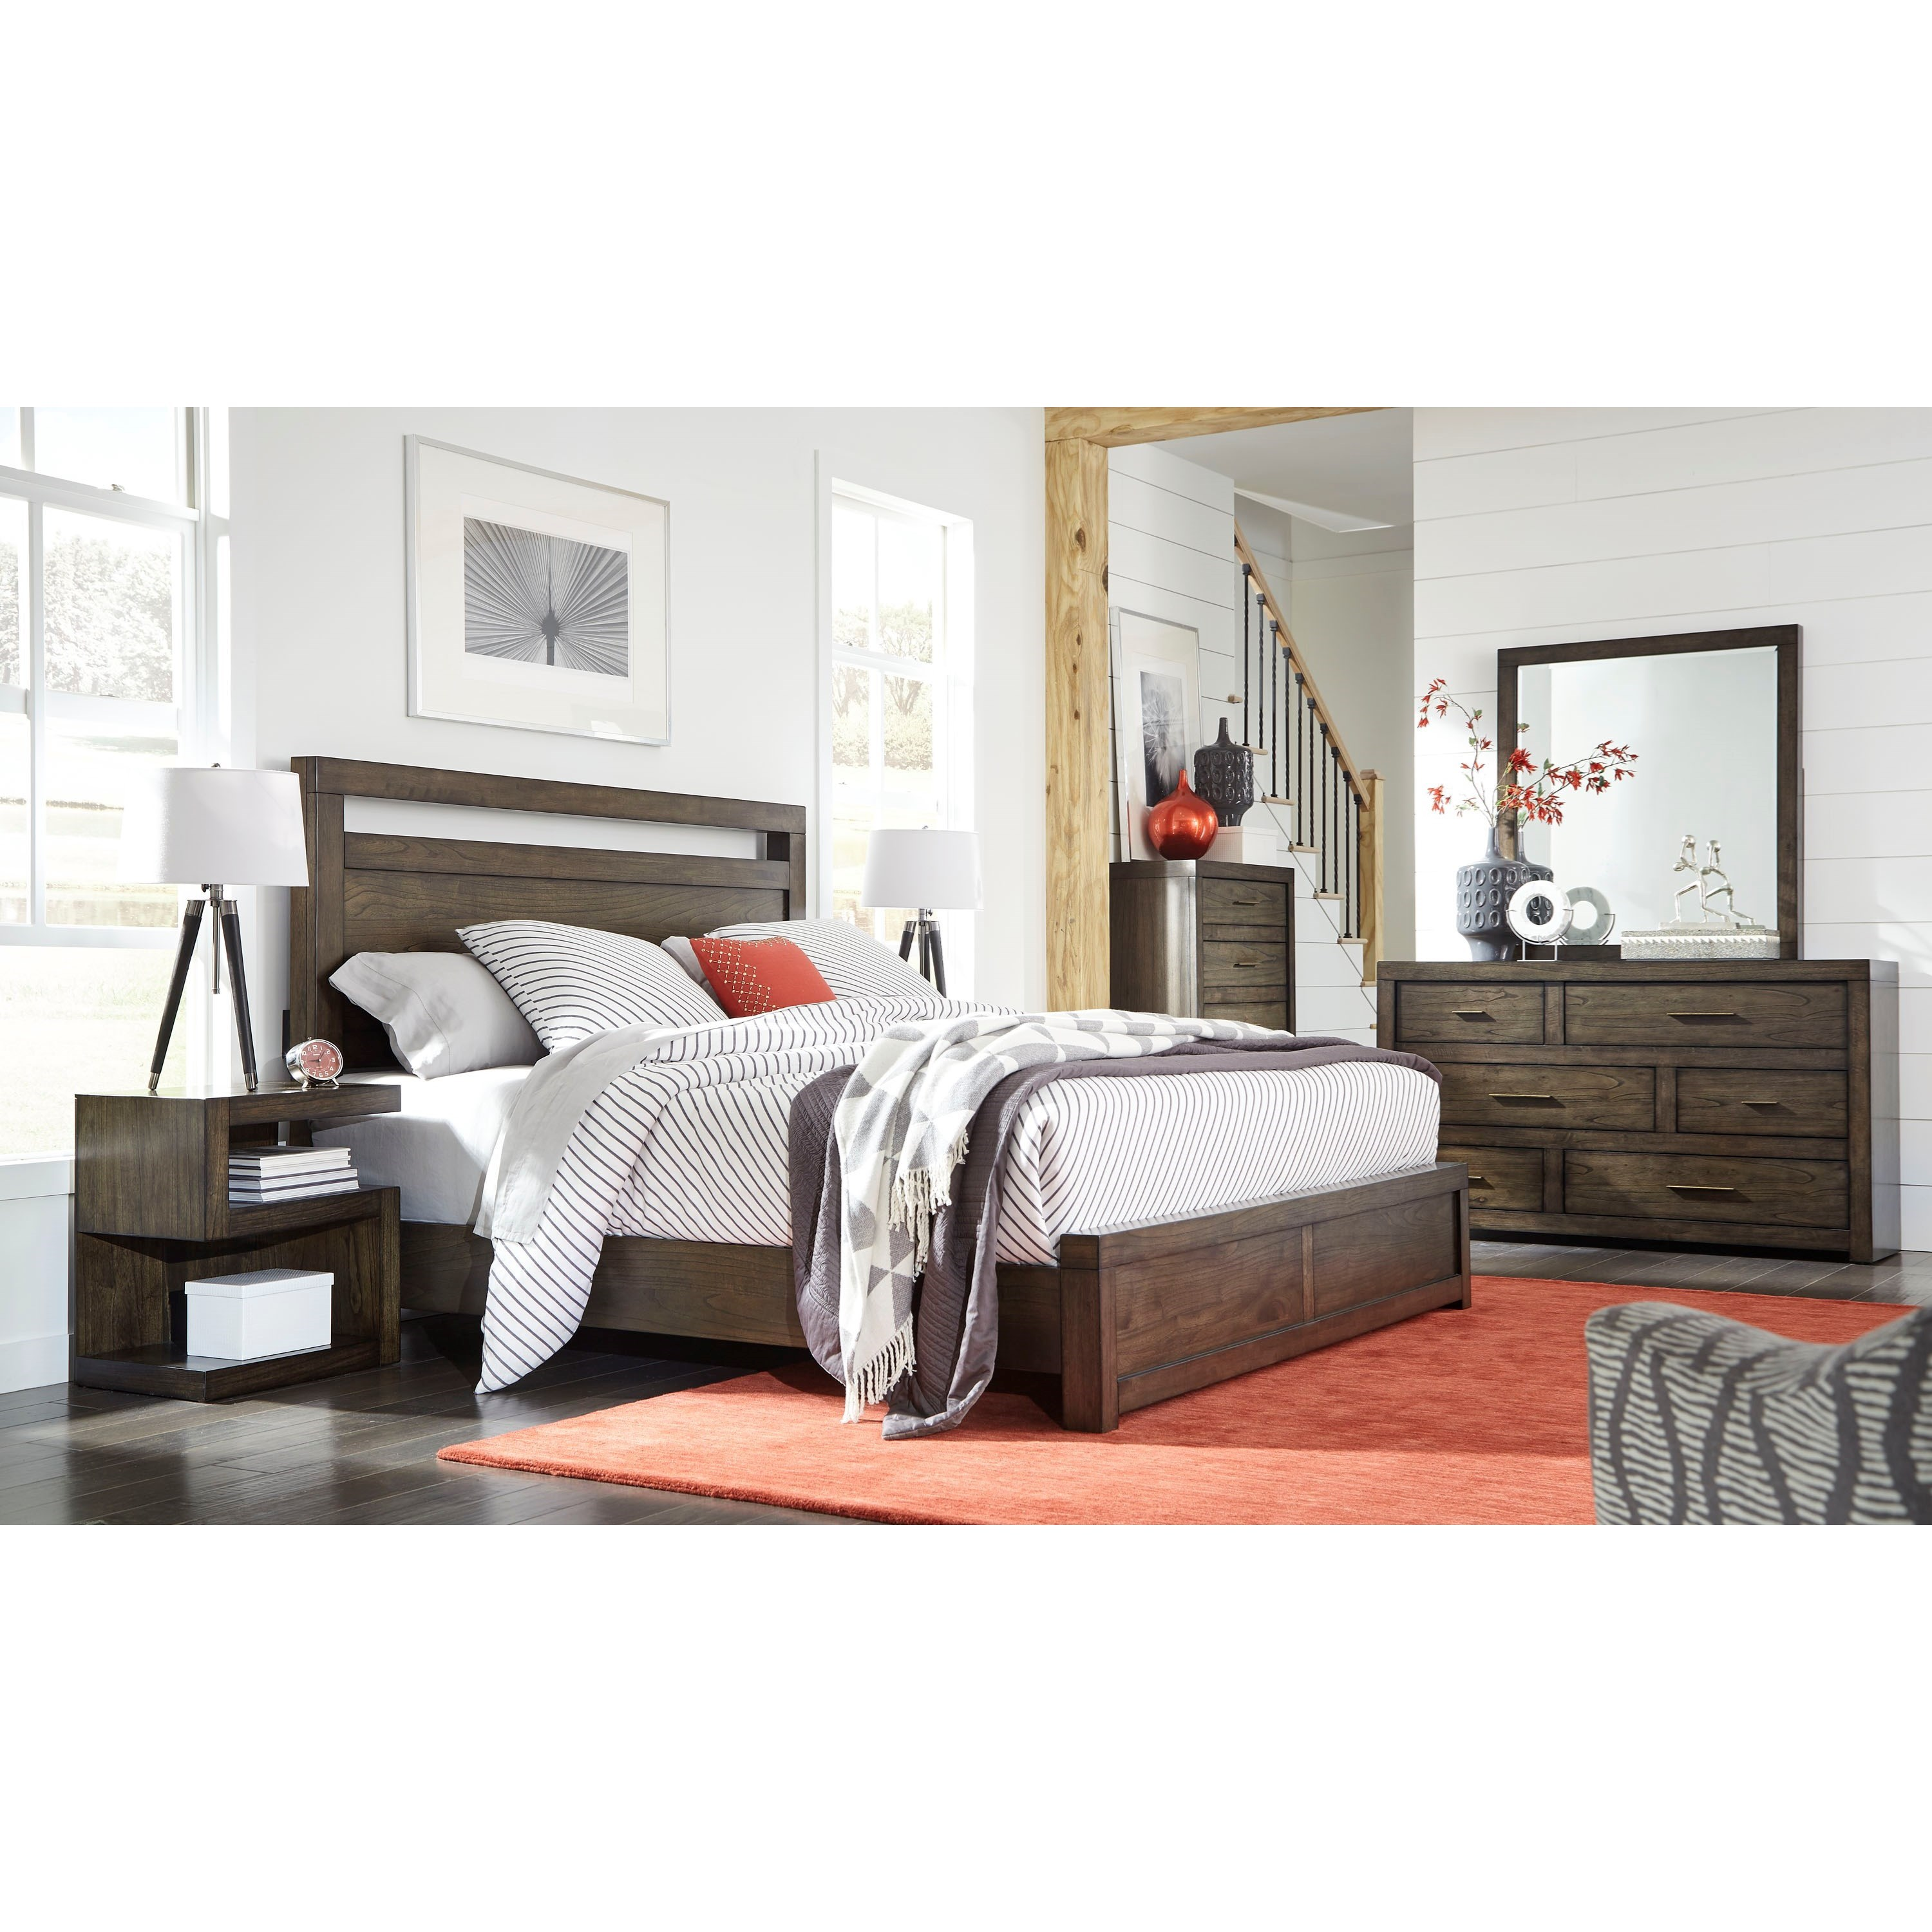 Modern Loft King Bedroom Group by Aspenhome at Baer's Furniture